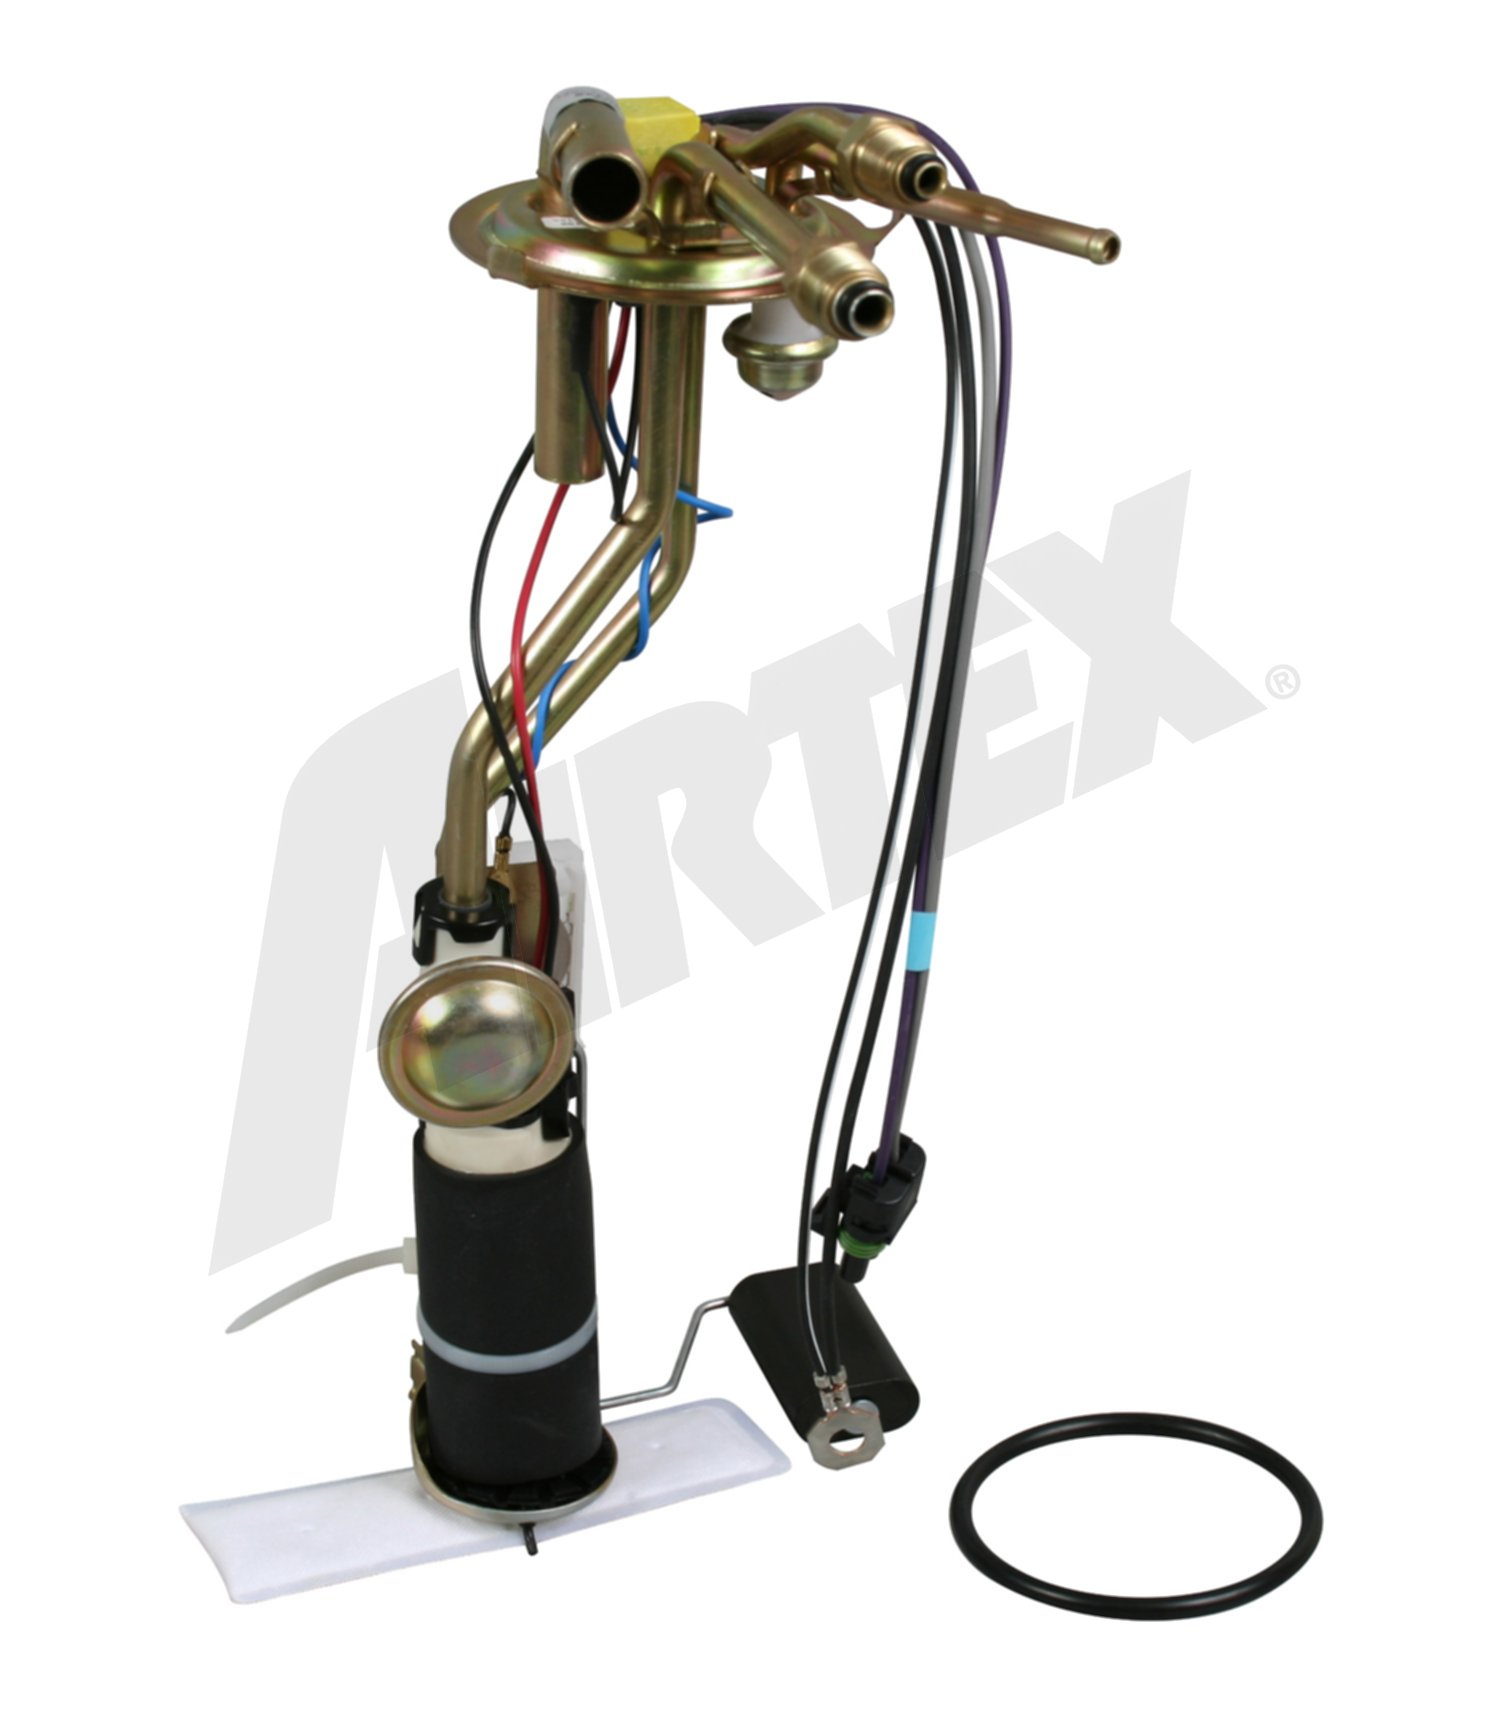 Image of Airtex Fuel Pumps E3643S Fuel Pump and Sender Assembly Fits 1991-1991 GMC Syclone